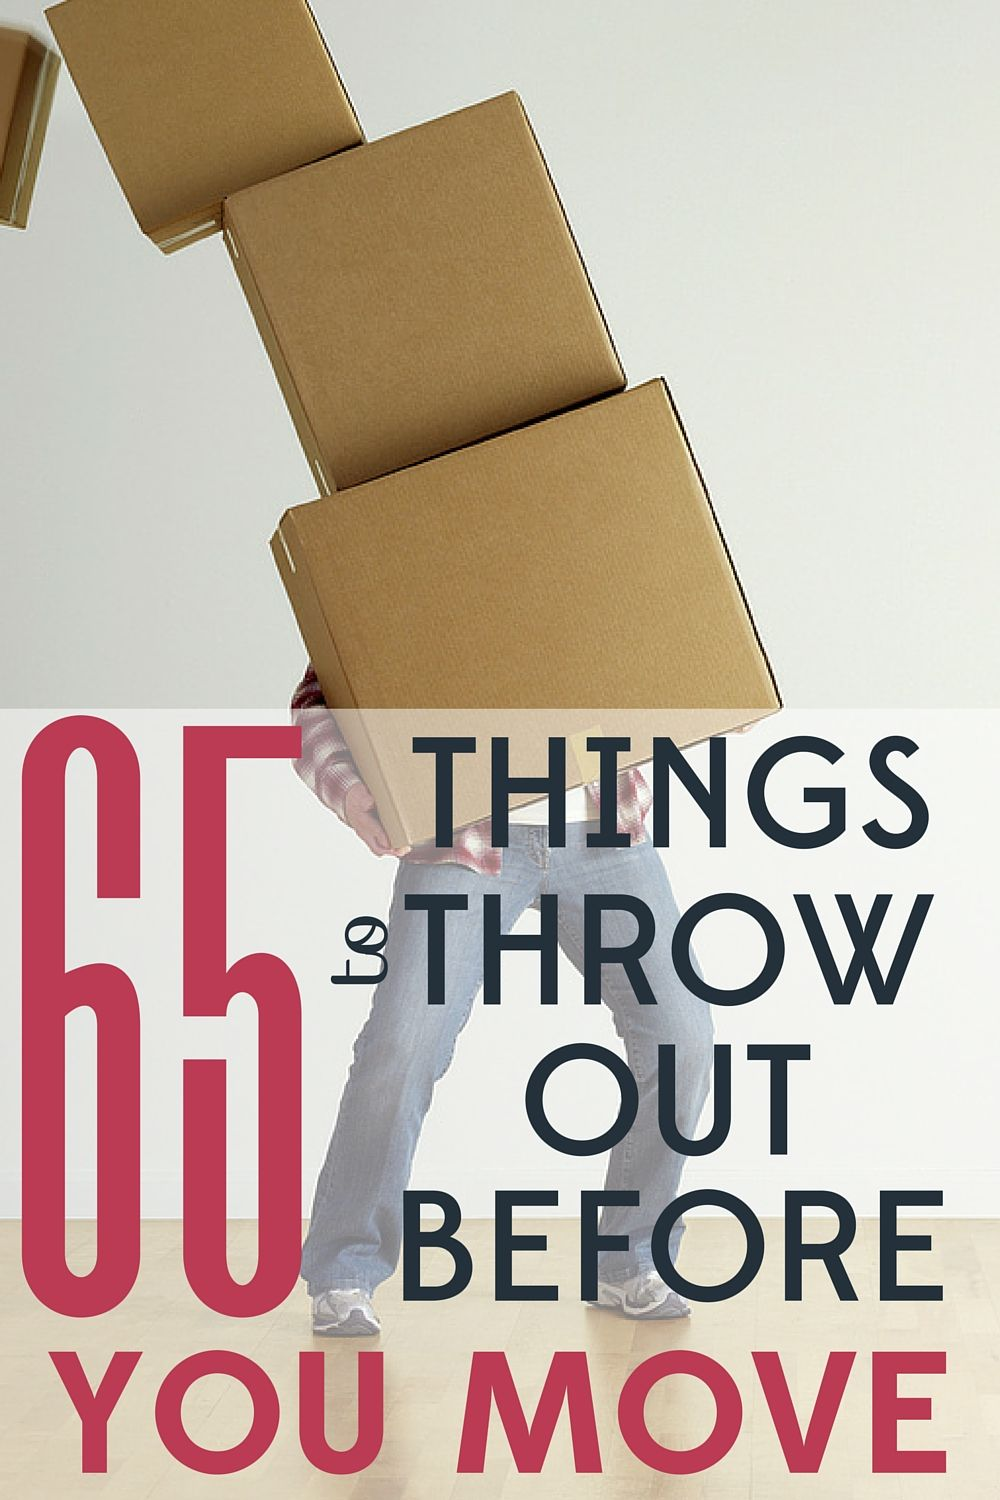 65 Things To Trash Before You Move Across Country Moving Hacks Packing Moving House Tips Moving Tips